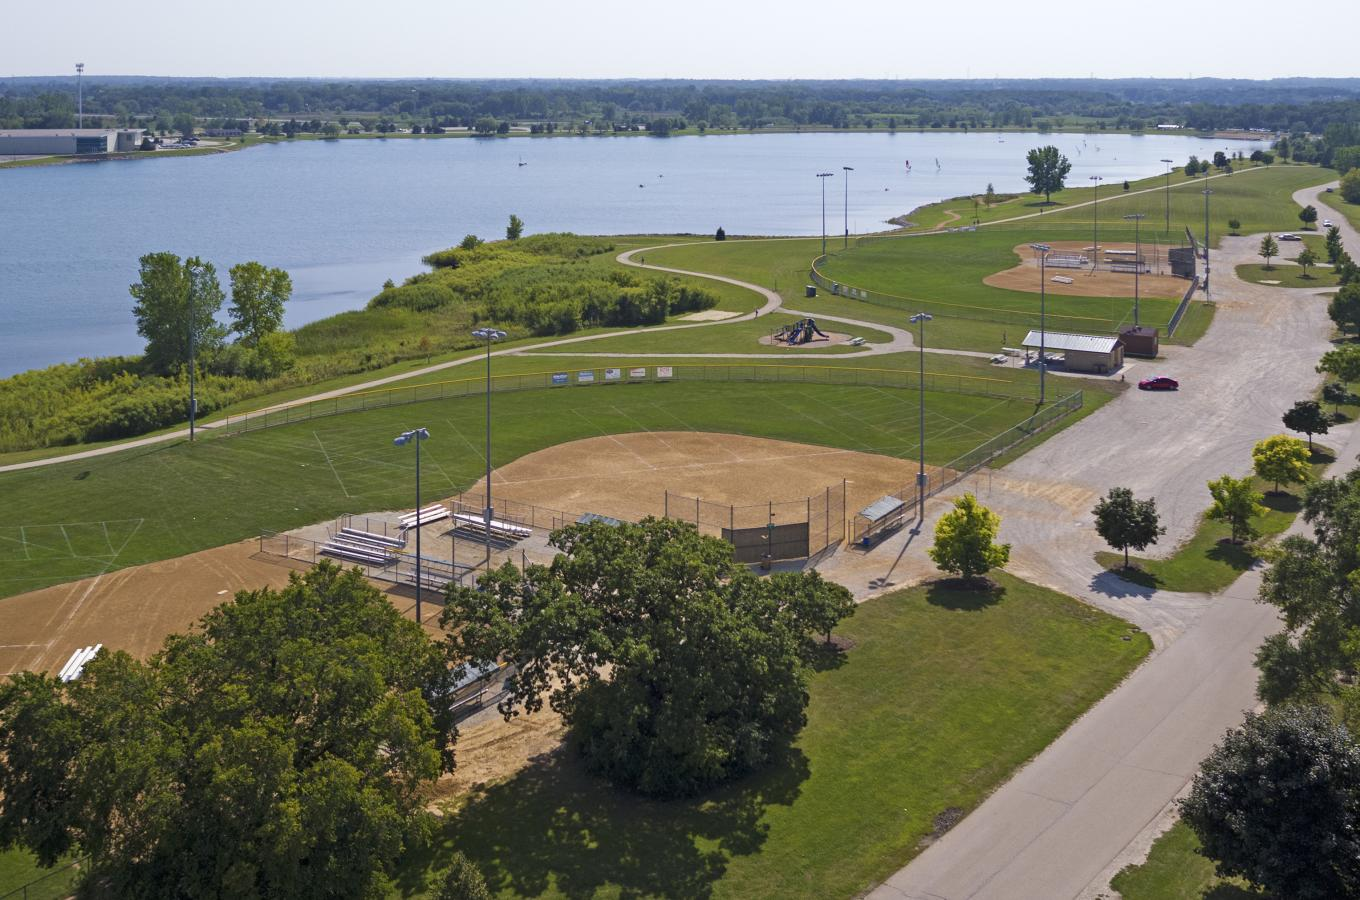 Drone of Ball Fields - Lake Andrea